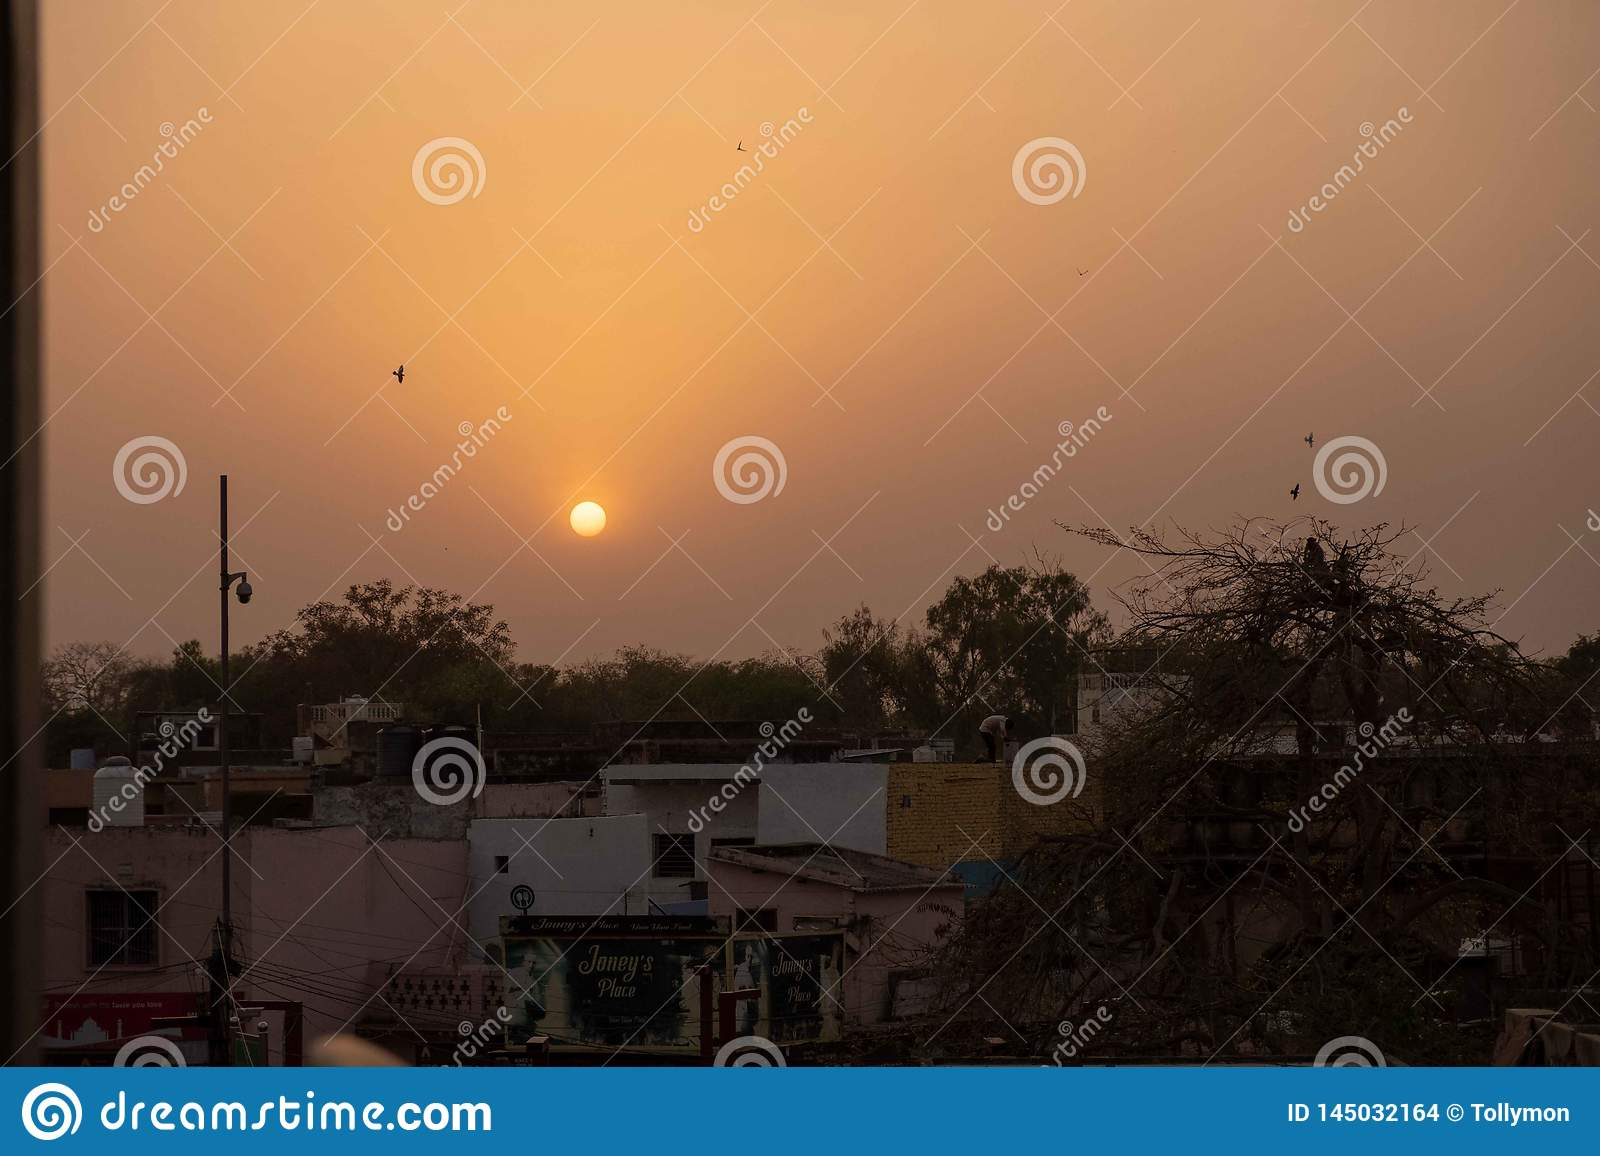 A rooftop sunset in Agra.